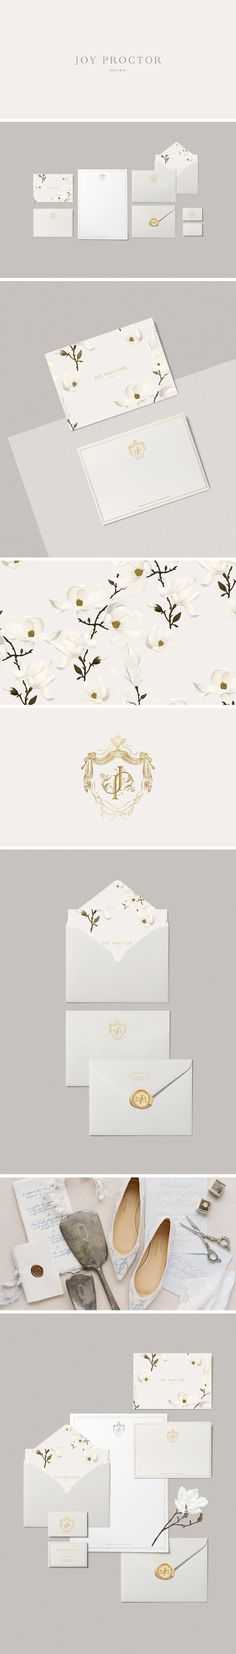 Joy Proctor brand identity designed by Cocorrina